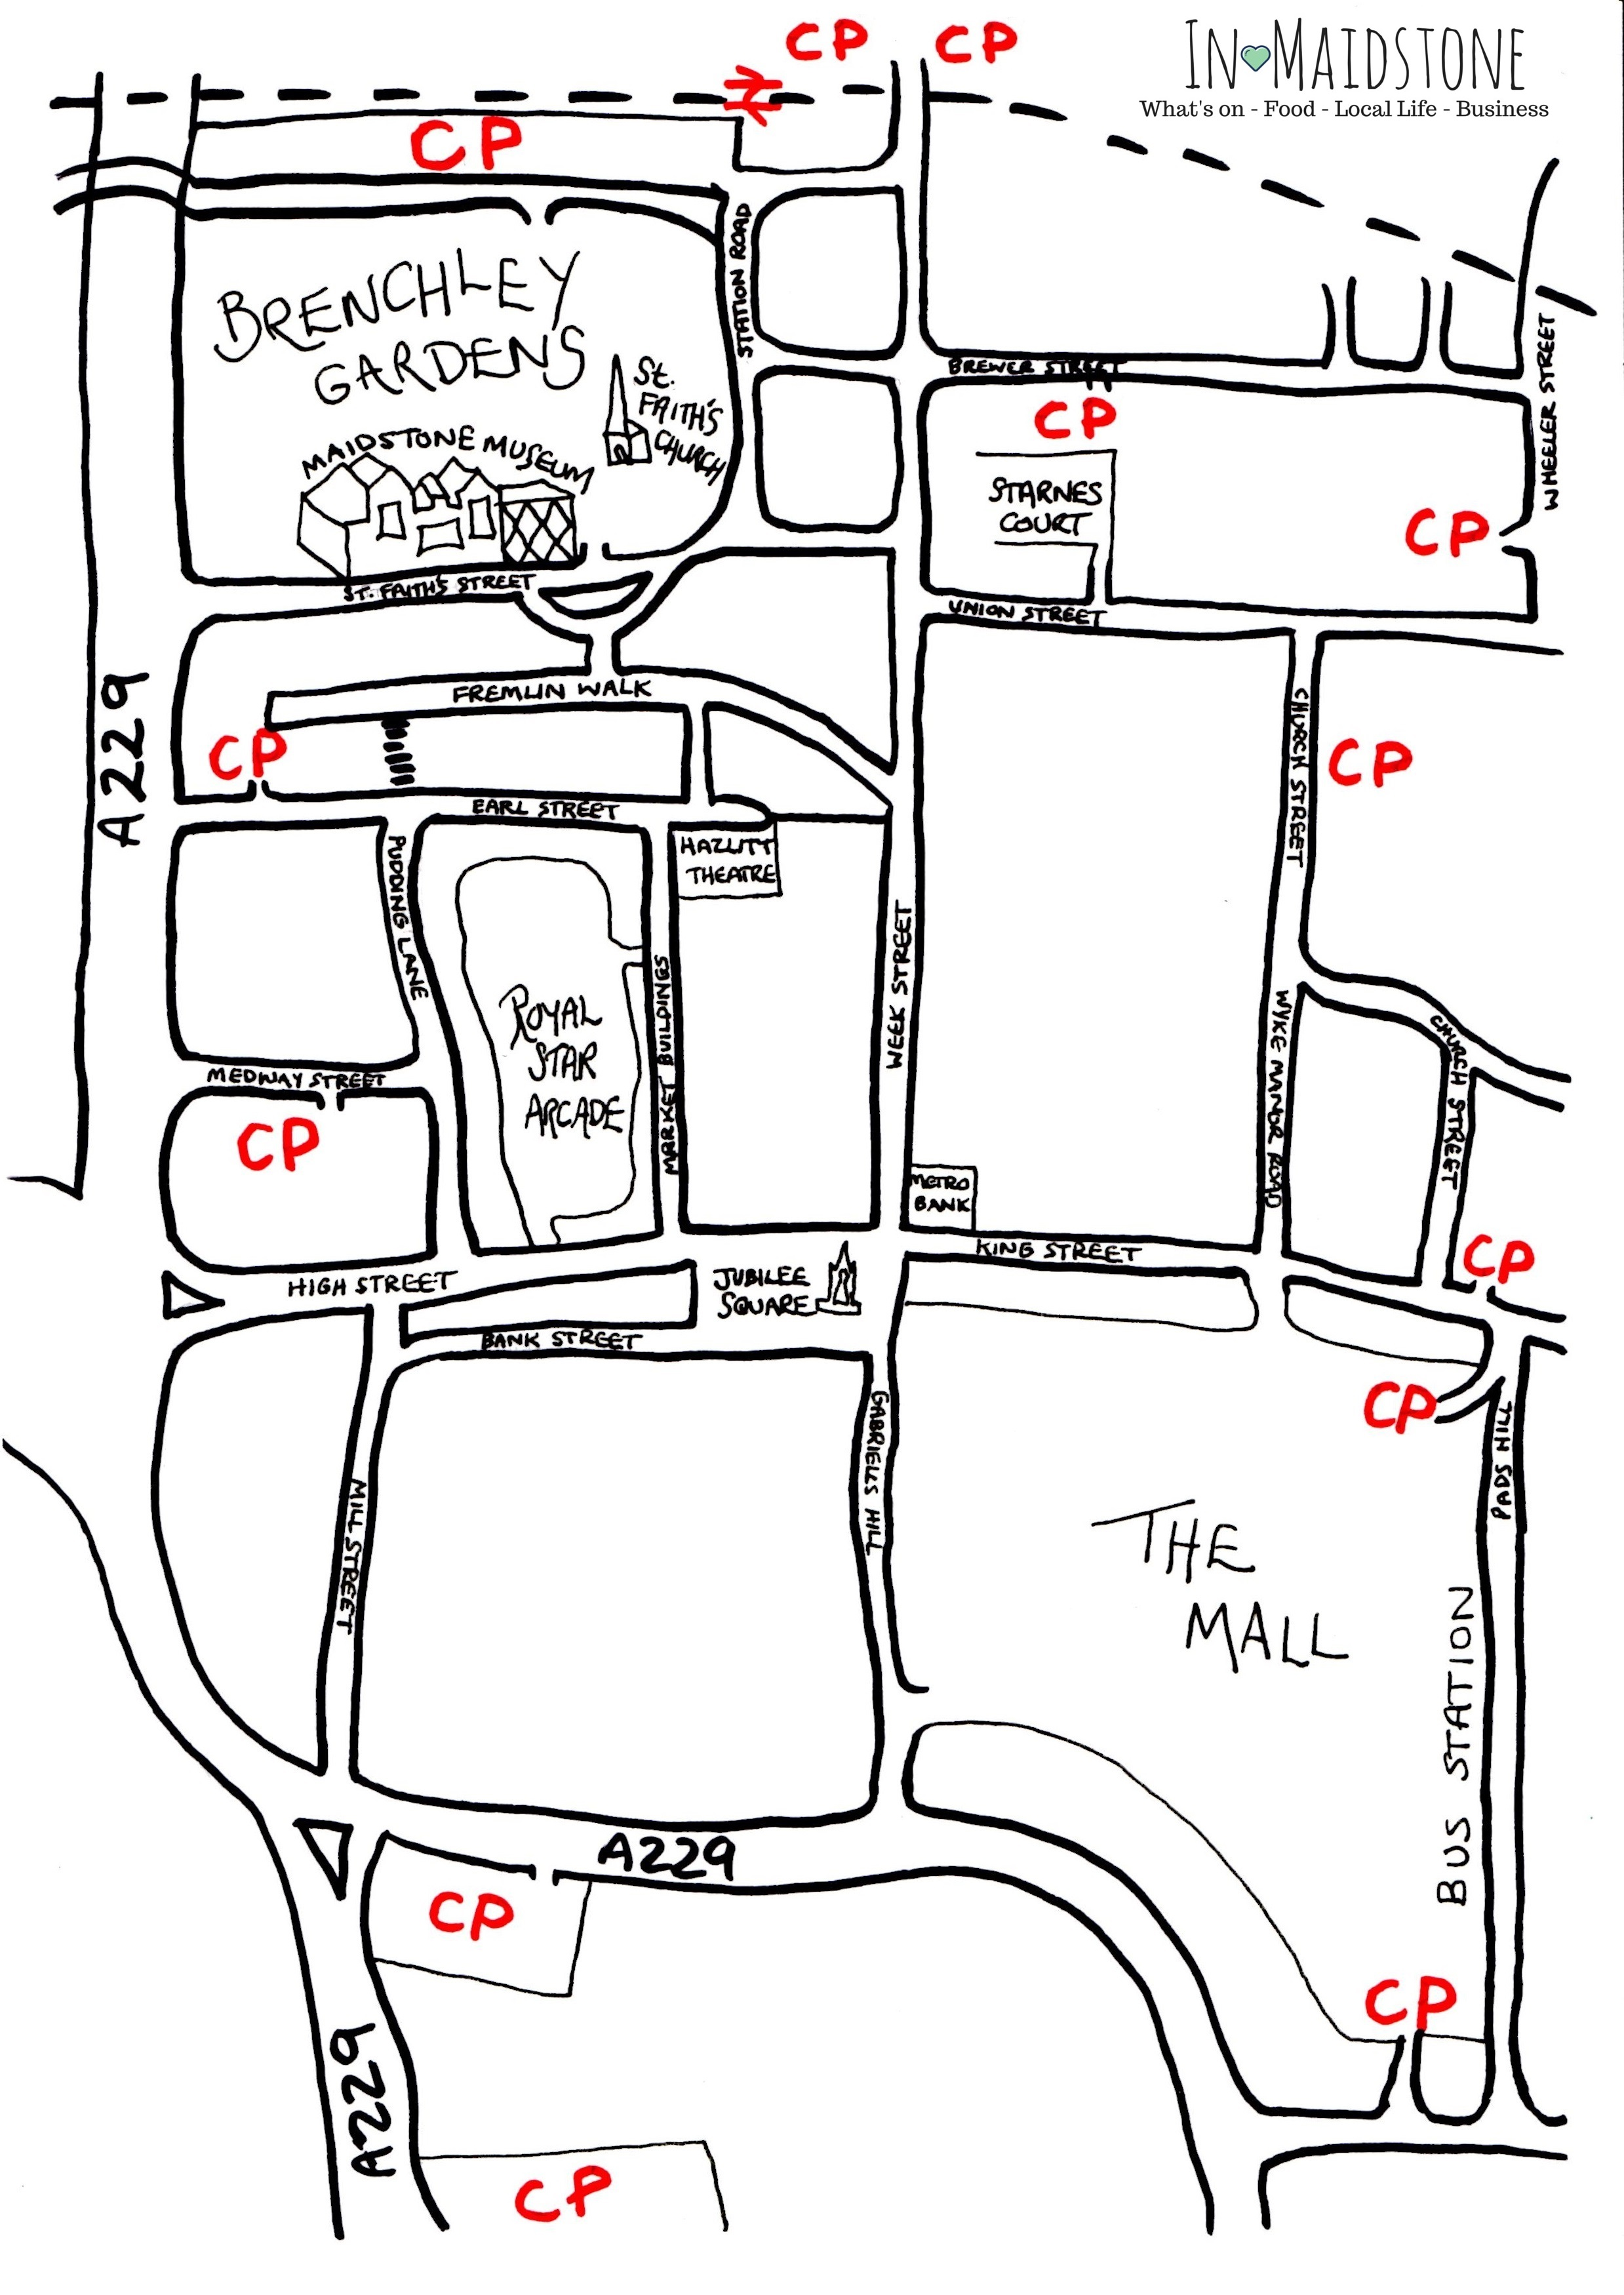 car-park-maidstone-town-centre-map